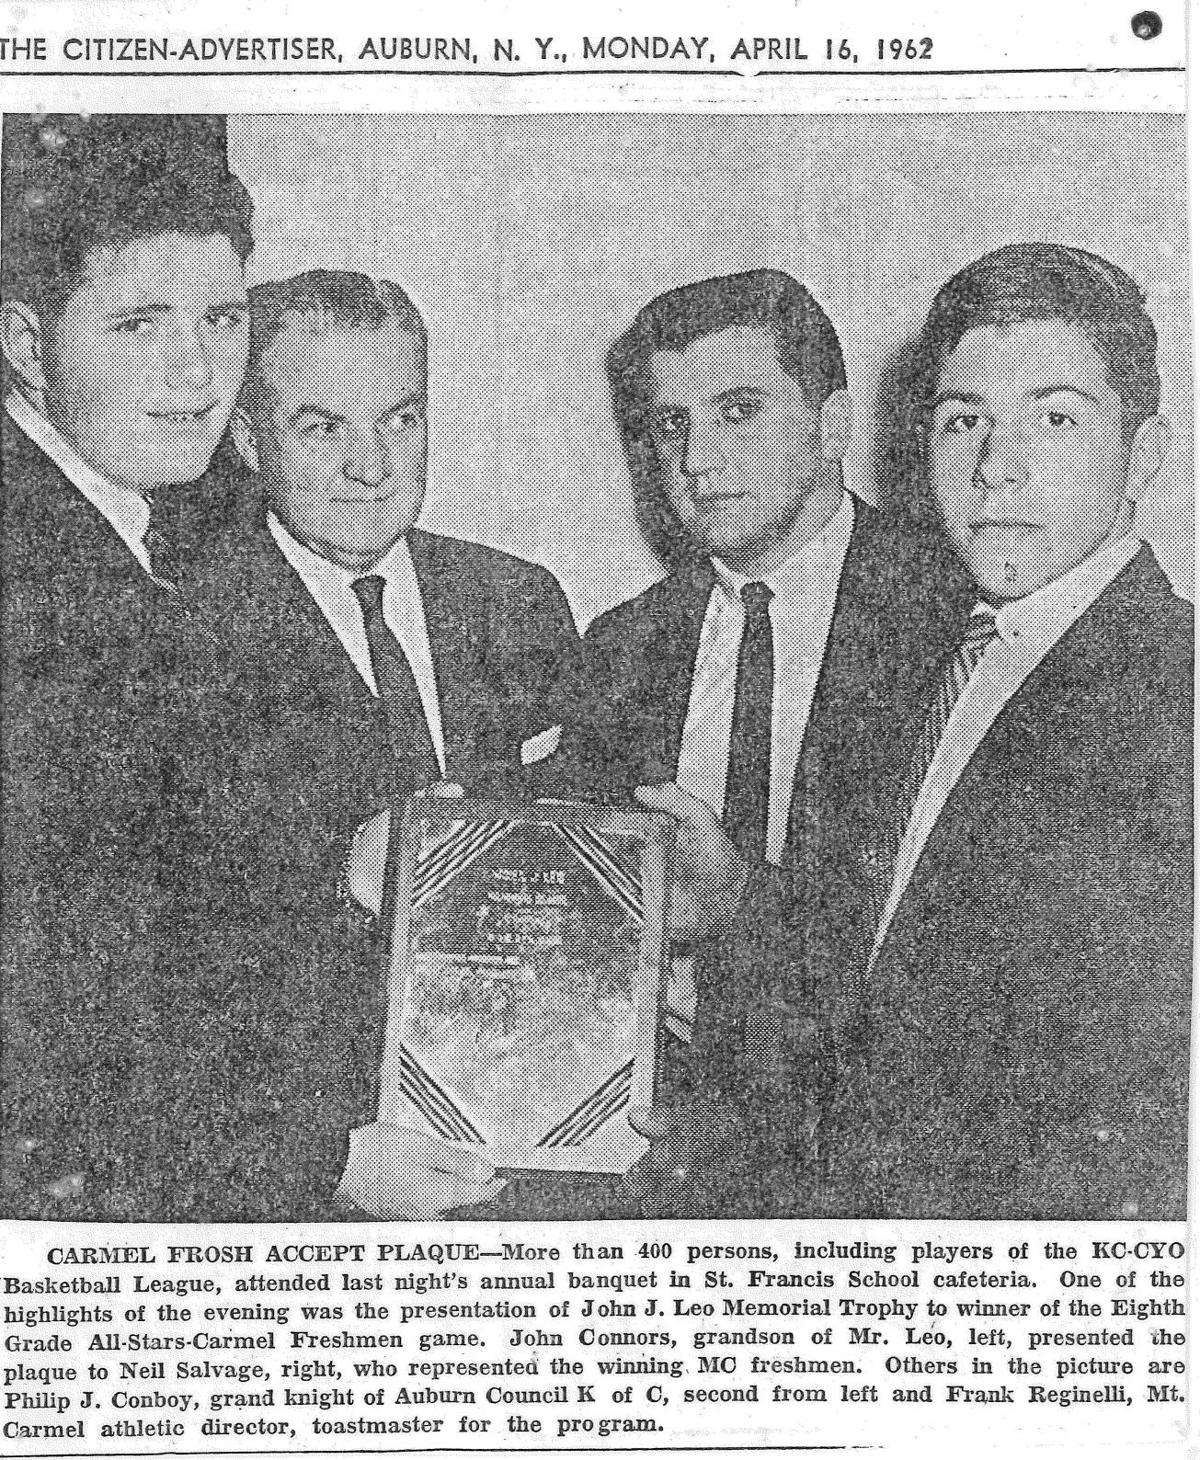 Photo # 2 - 1962 - Neil Salvage receives award